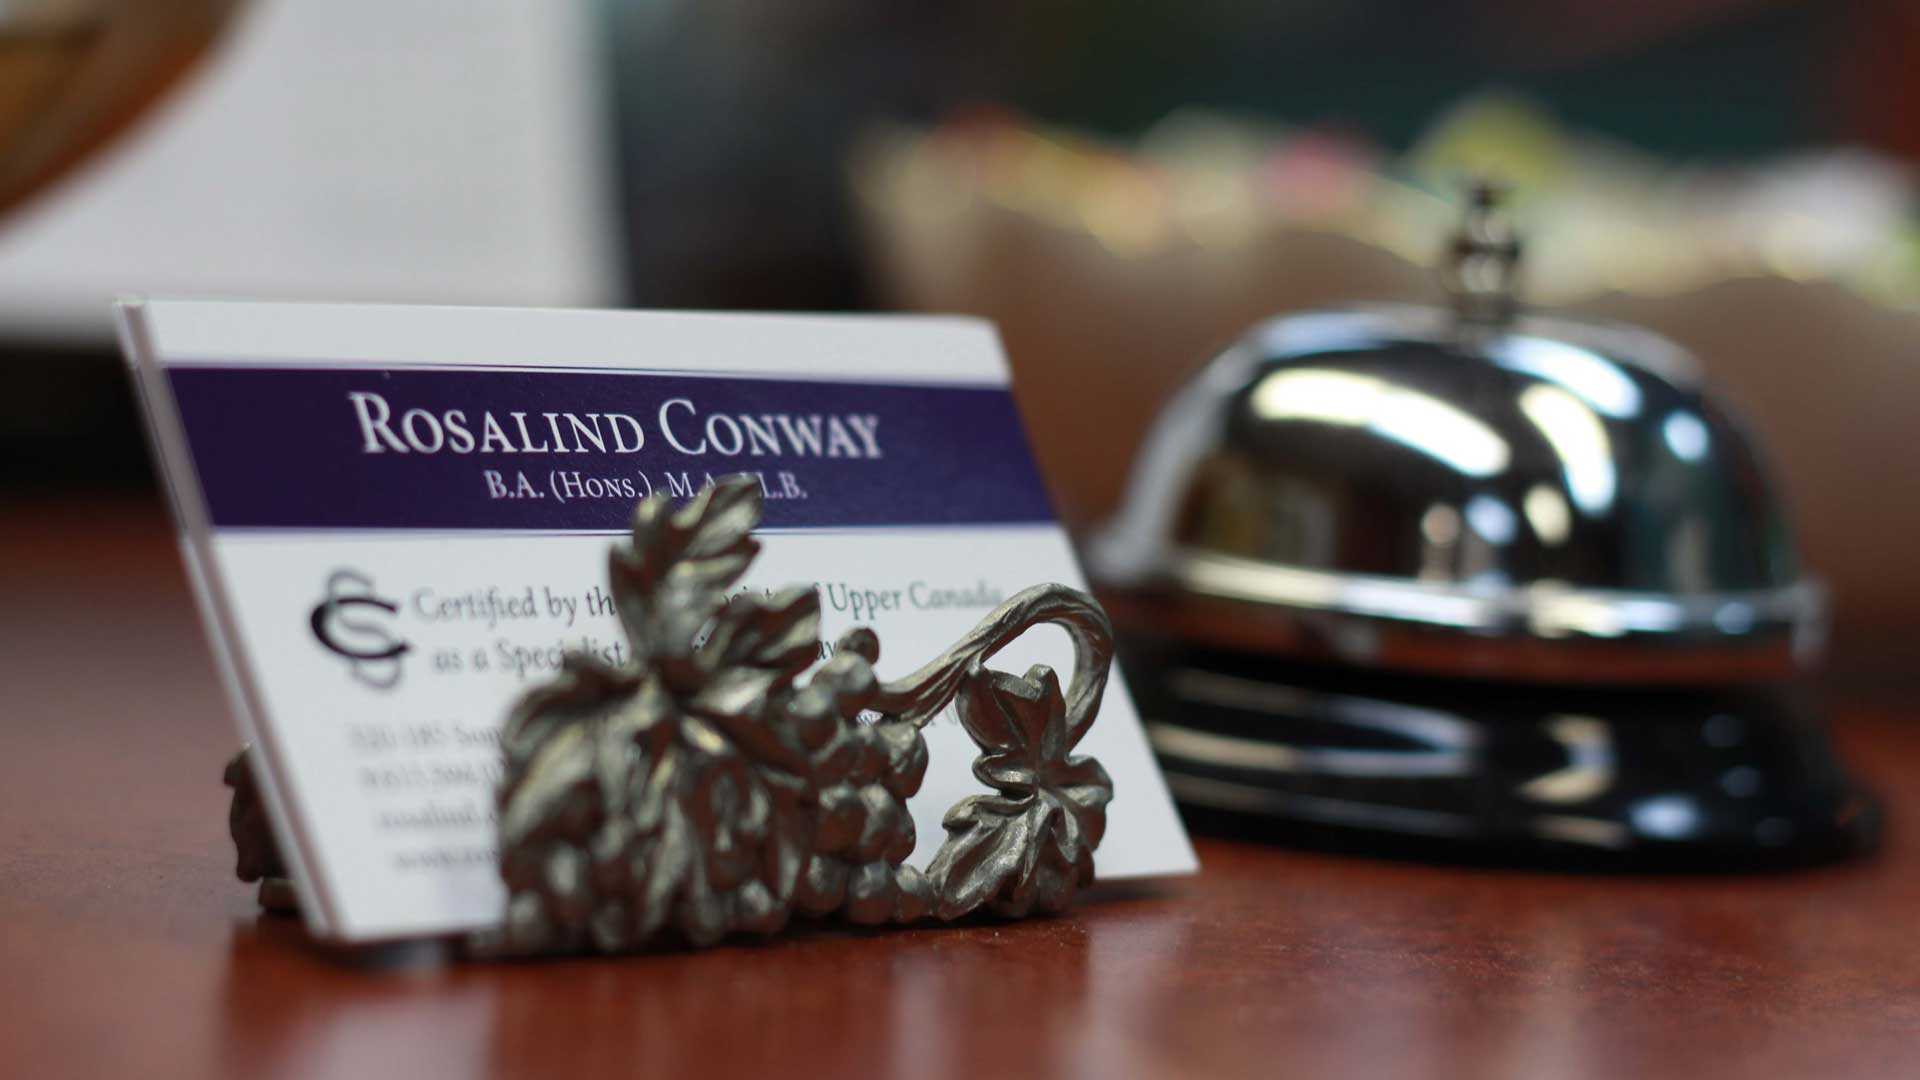 Law Office of Rosalind E. Conway Lawyer Services